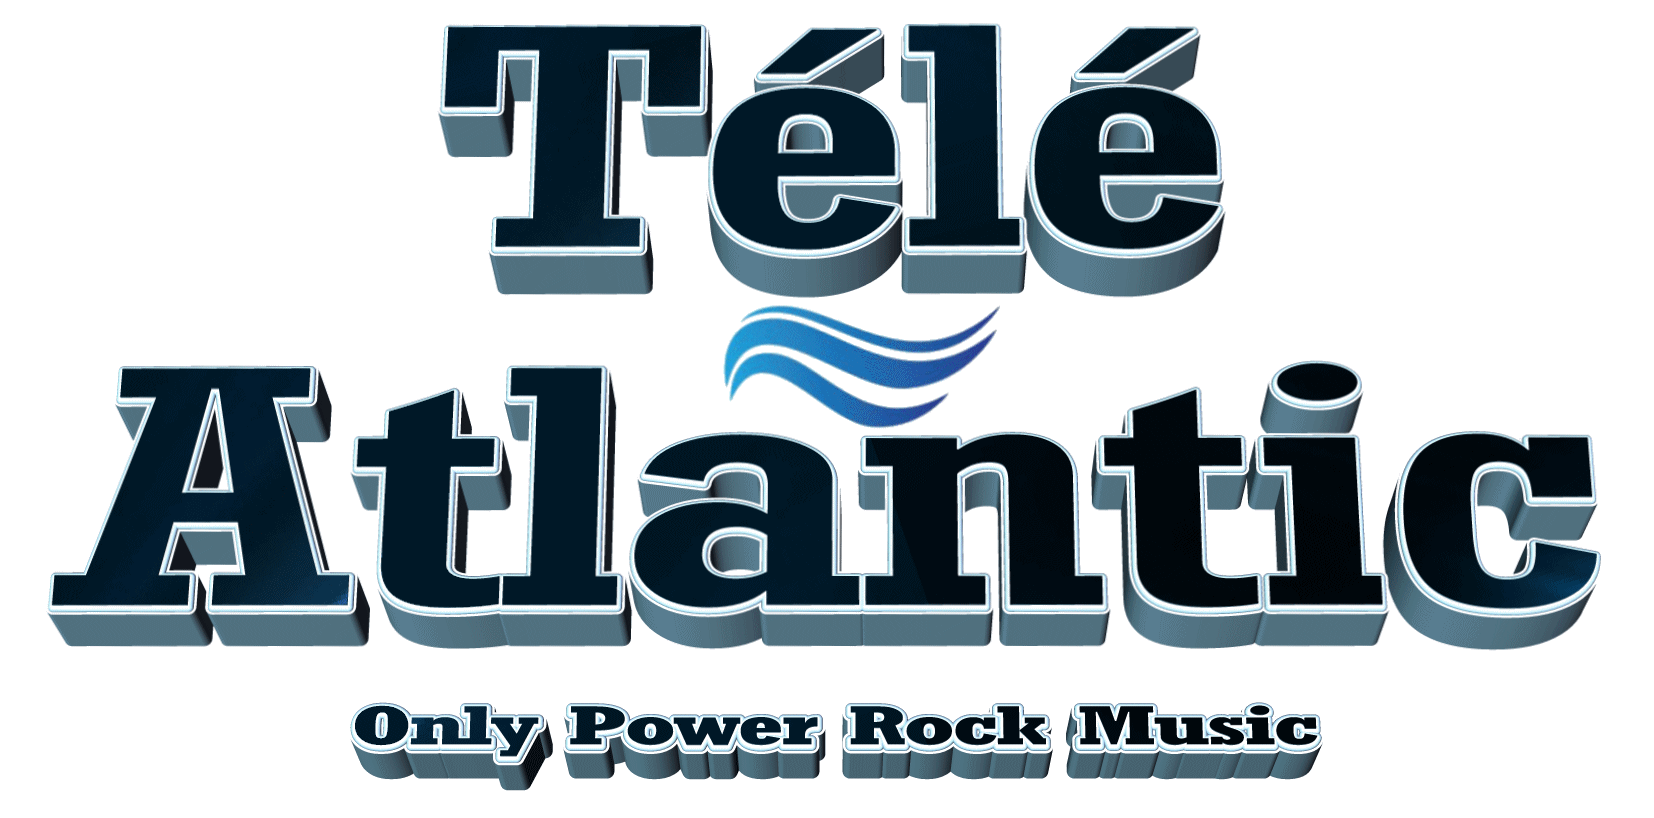 TELE ATLANTIC